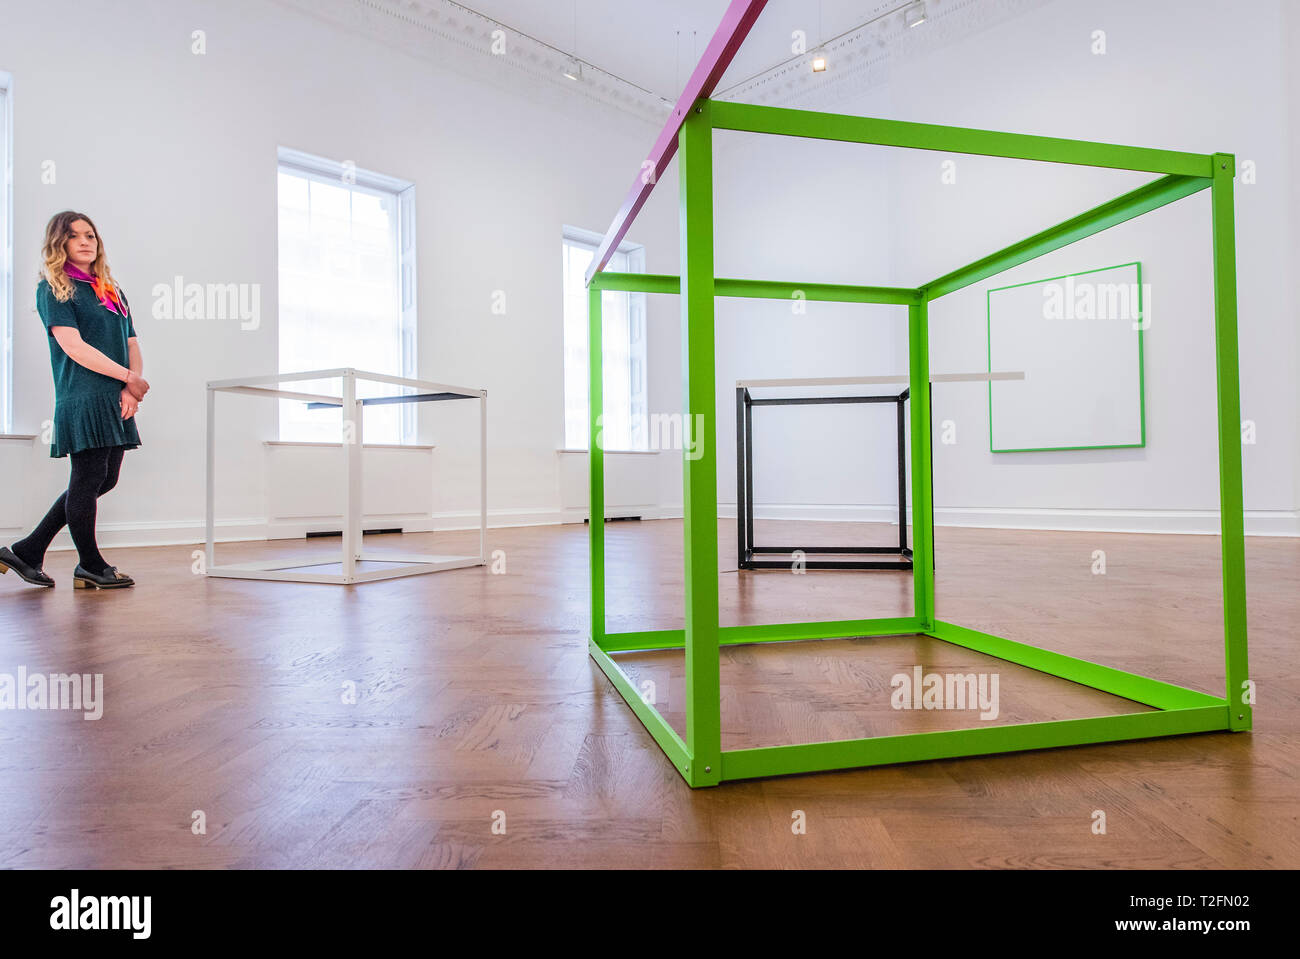 London, UK. 2nd Apr 2019. Romantic/Eclectic (Remodelled Carousel Edit) - a series of worksby Berlin-based Austrian artist Gerwald Rockenschaub in which he presents his abstracted 'geometric playgrounds' at Galerie Thaddaeus Ropac. Site-specific, multifaceted wall installations that respond to the architecture of Ely House – alongside his Intarsia and Relief series. The artist has been associated with the Neo-Geo movement as well as with Minimalism. Credit: Guy Bell/Alamy Live News - Stock Image